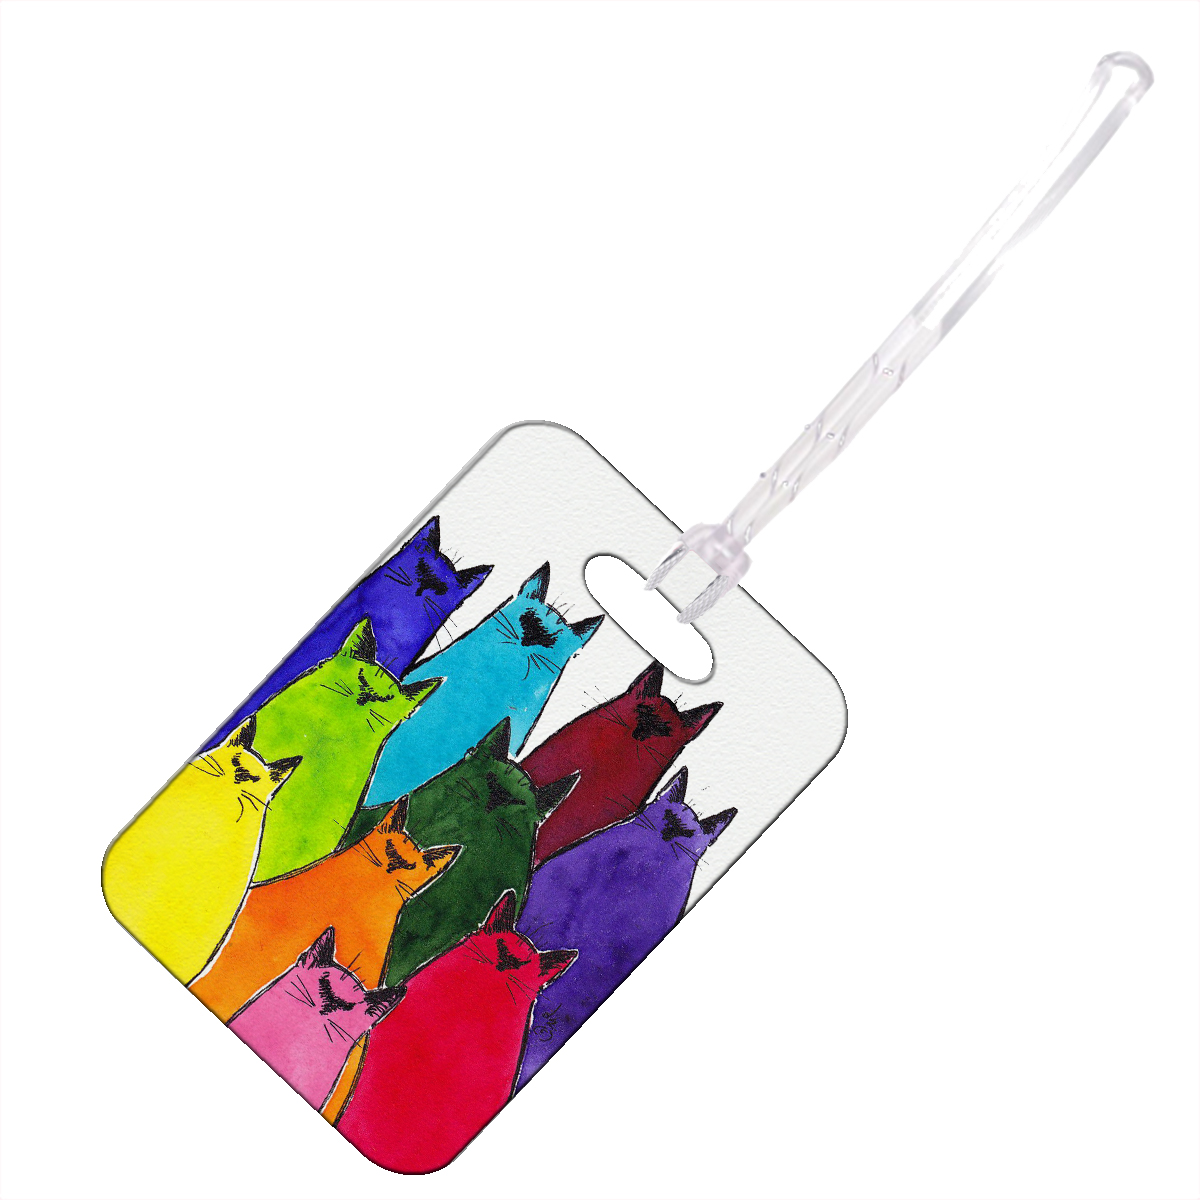 KuzmarK Luggage Travel Bag Tag -  Siamese Kittes in Crayon Colors Abstract Cat Art by Denise Every